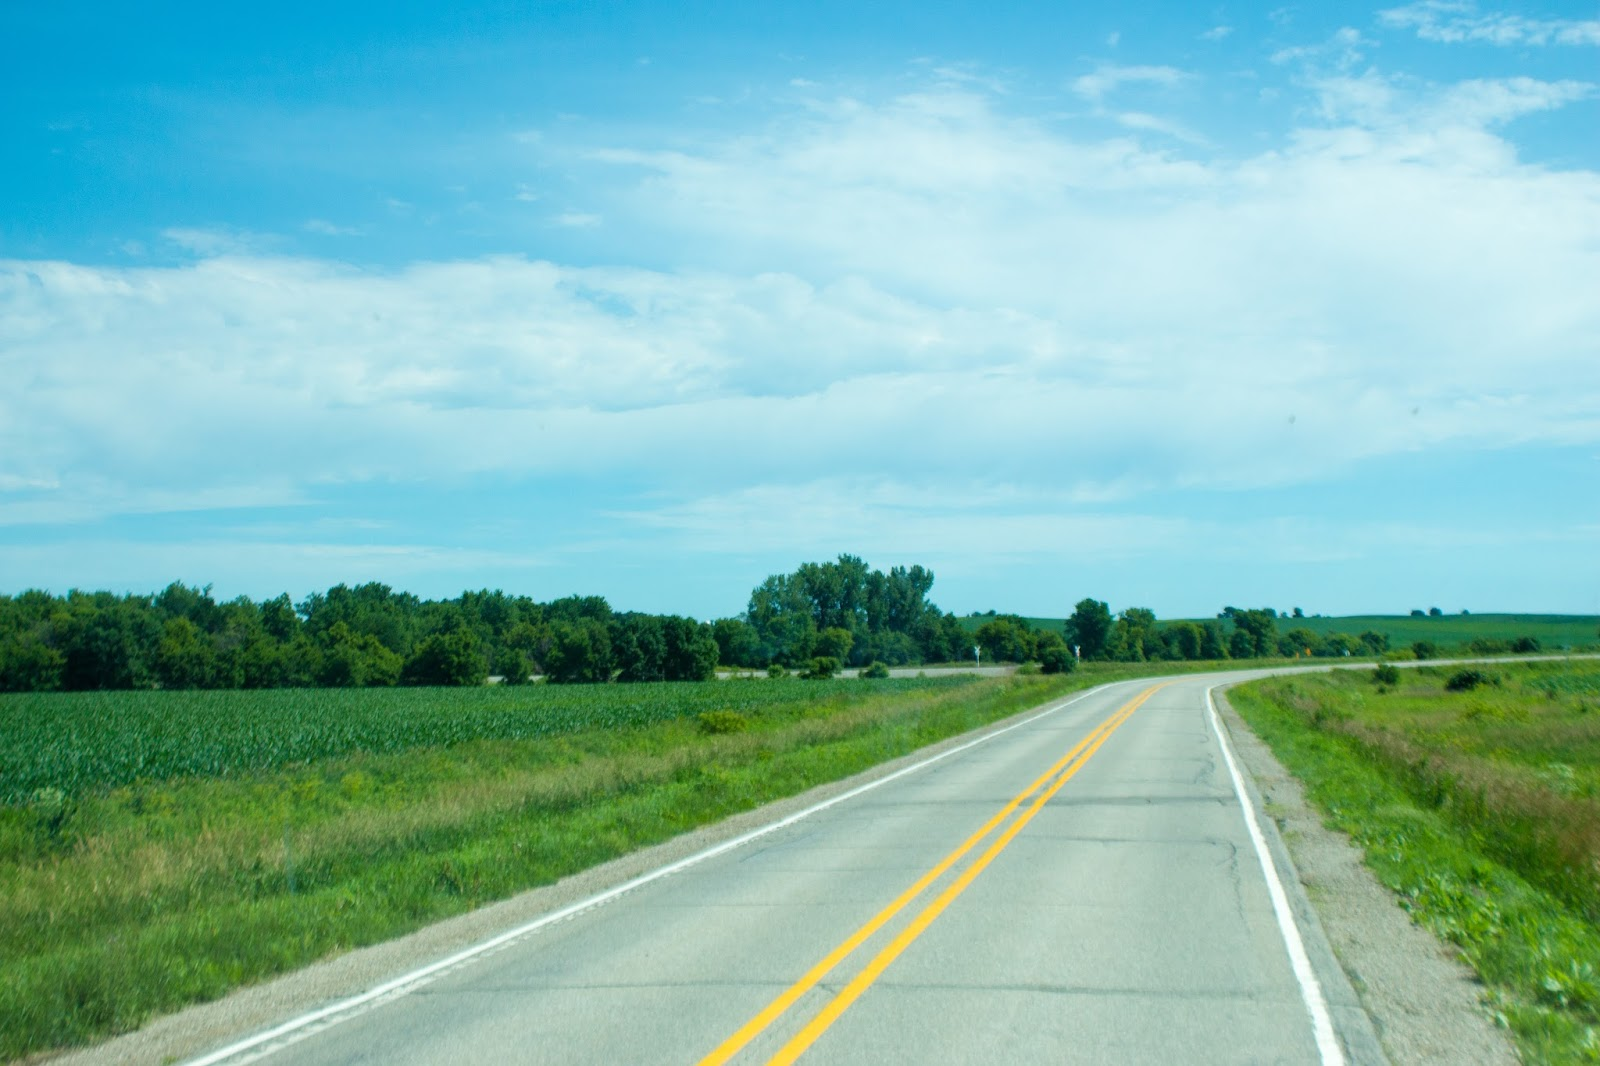 On The Meandering Road: June 23, 2015 - Des Moines, IA to Galesburg, IL